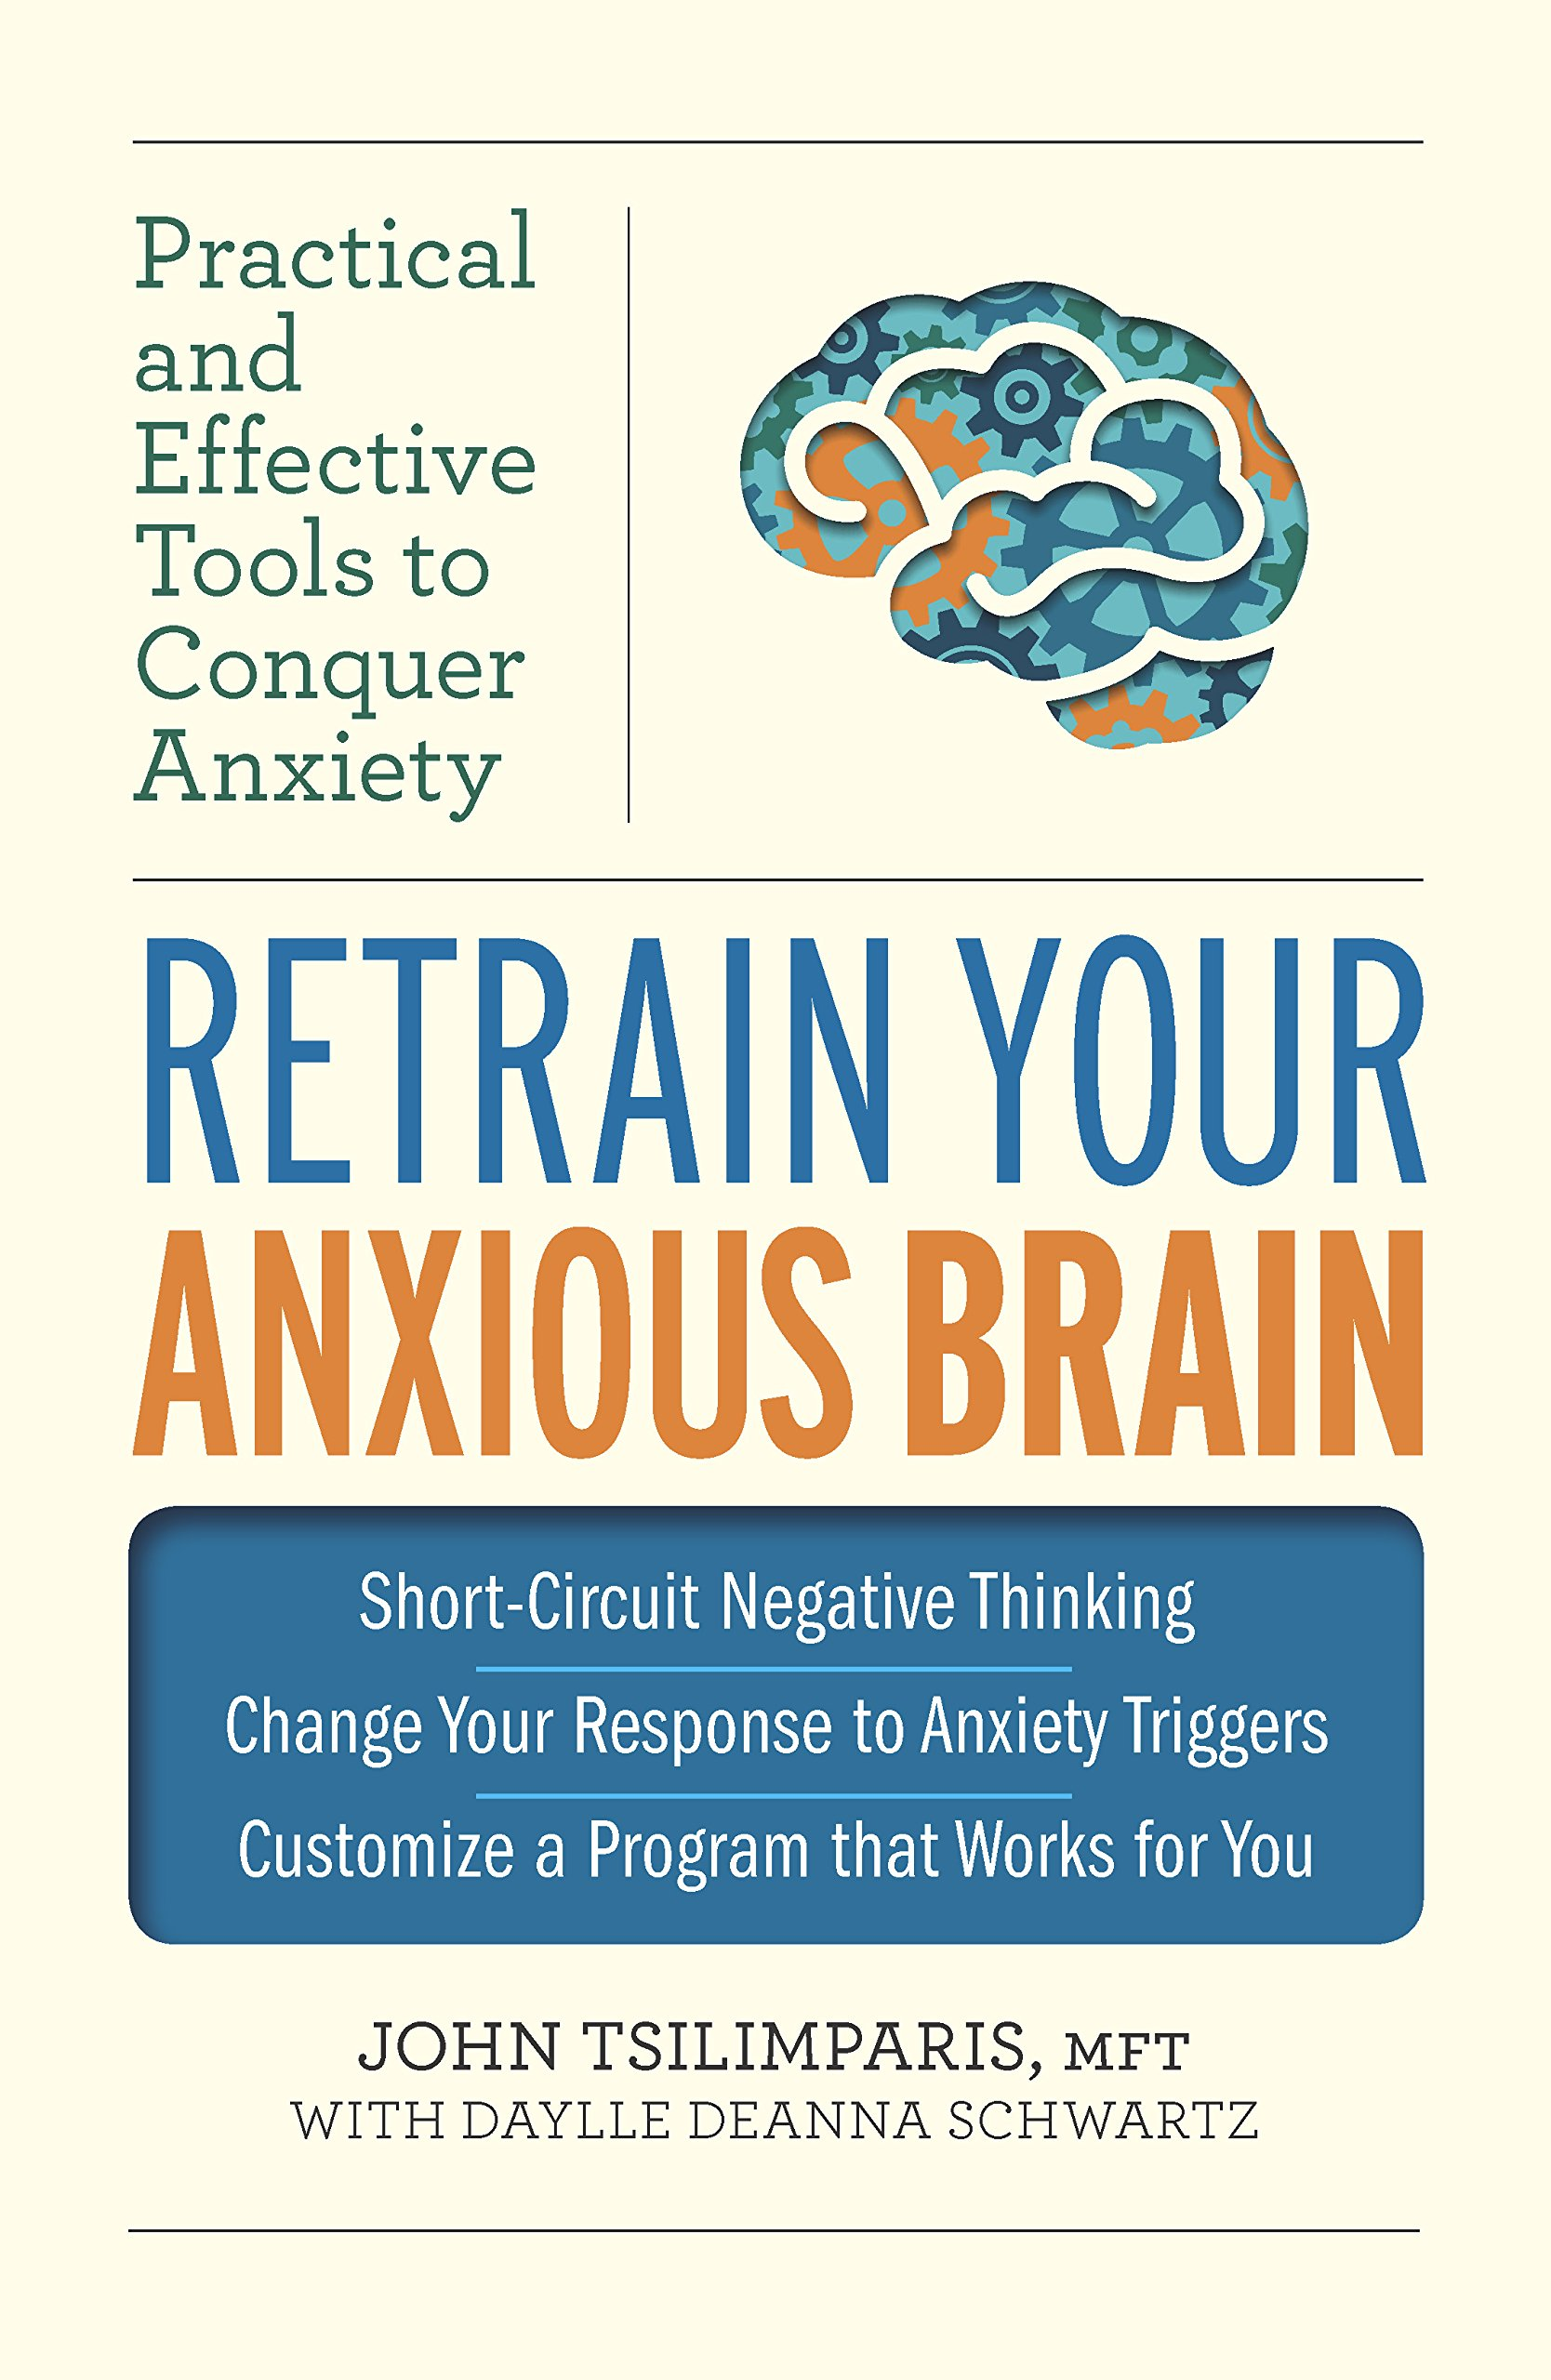 Retrain Your Anxious Brain: Practical and Effective Tools to Conquer Anxiety:  John Tsilimparis, Daylle Deanna Schwartz: 9780373892914: Amazon.com: Books